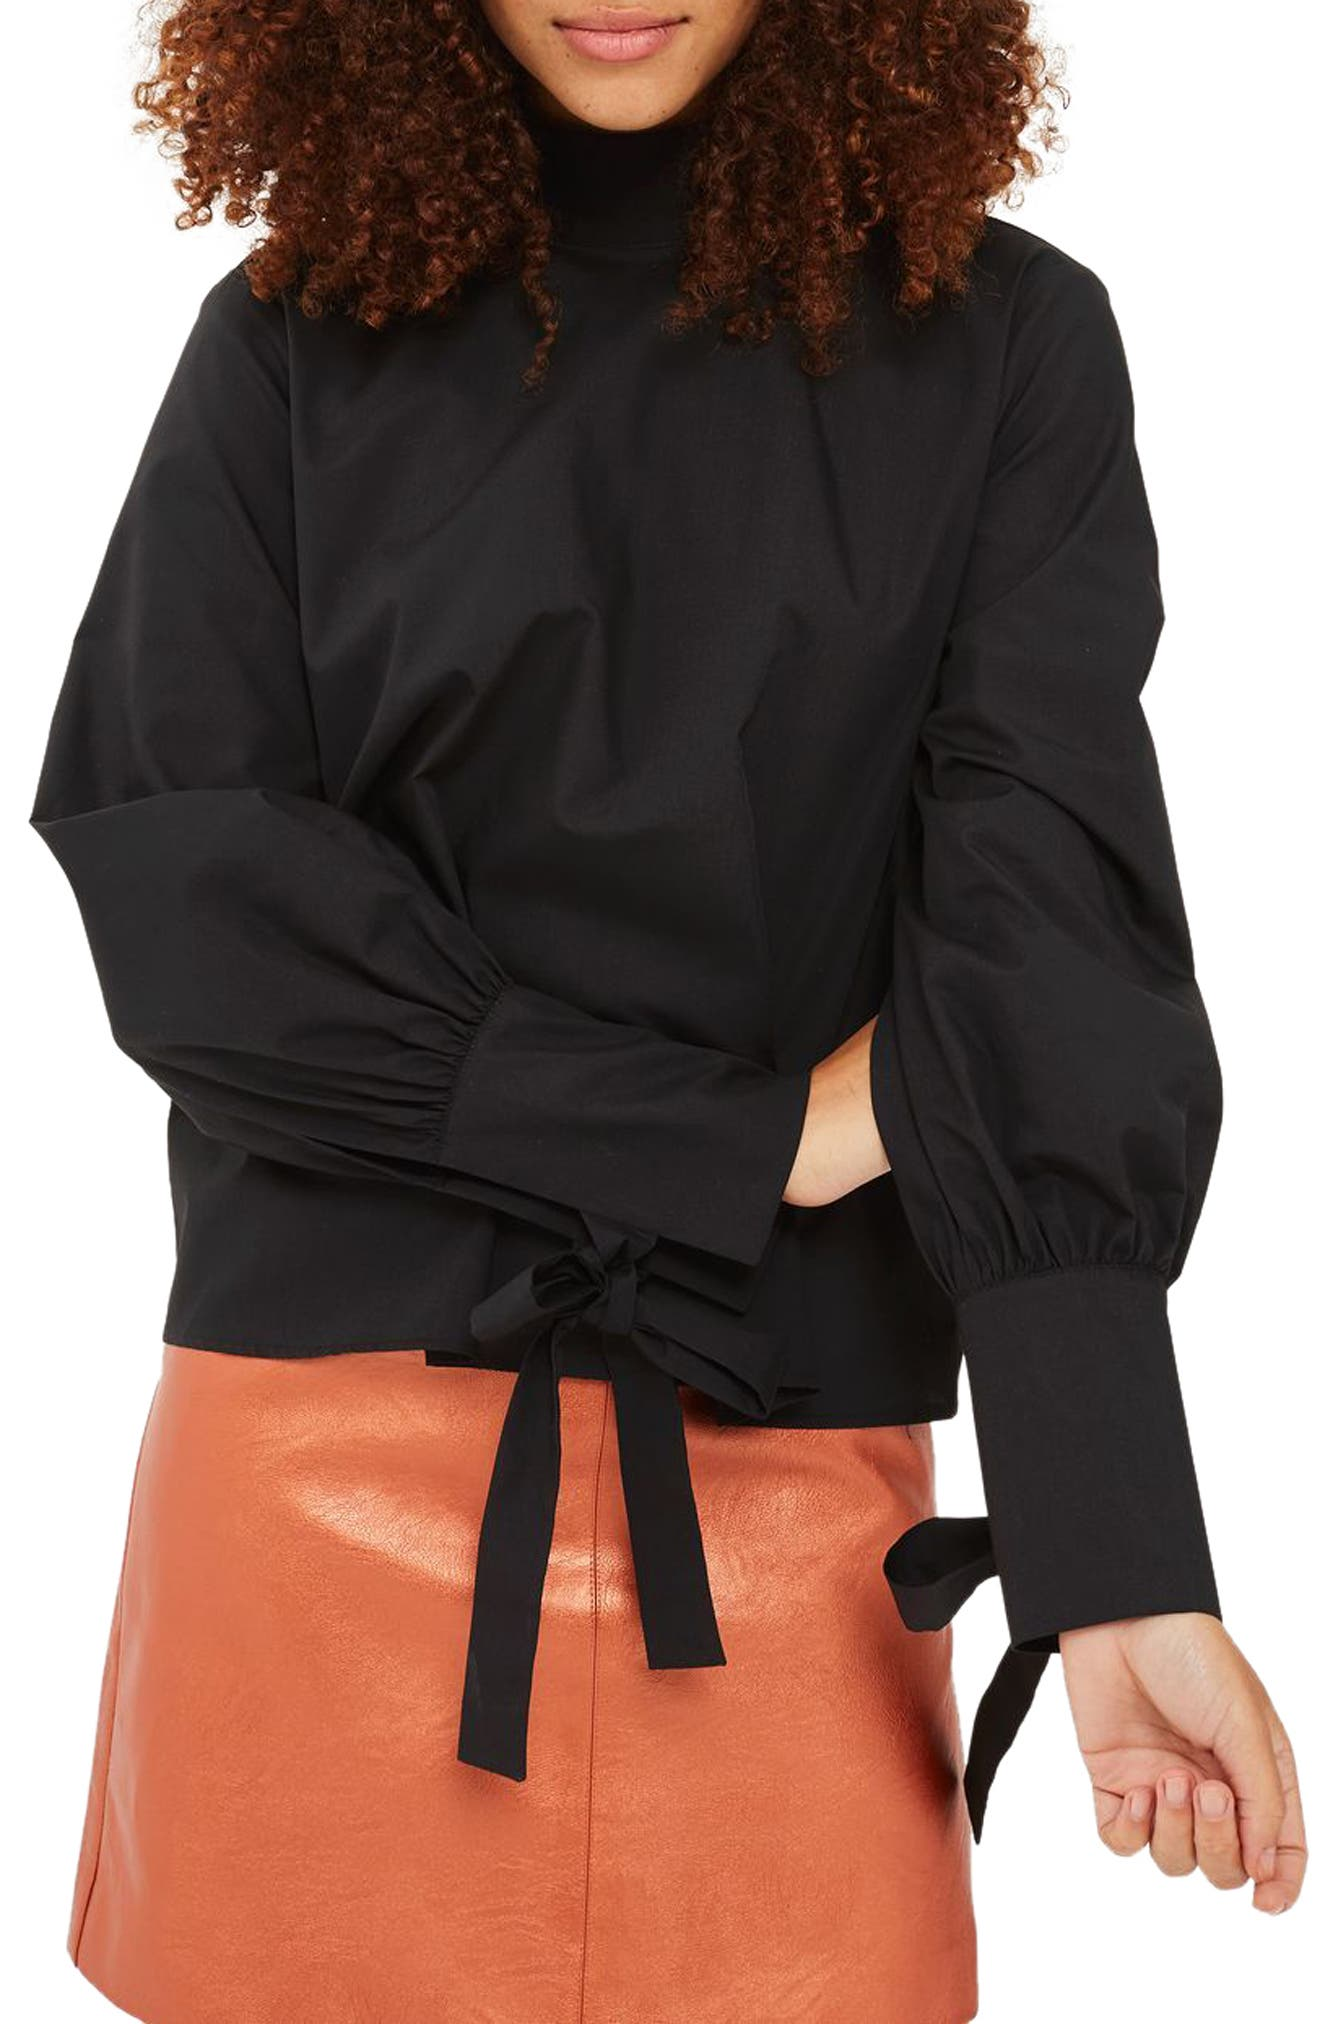 Topshop High Neck Tie Sleeve Blouse